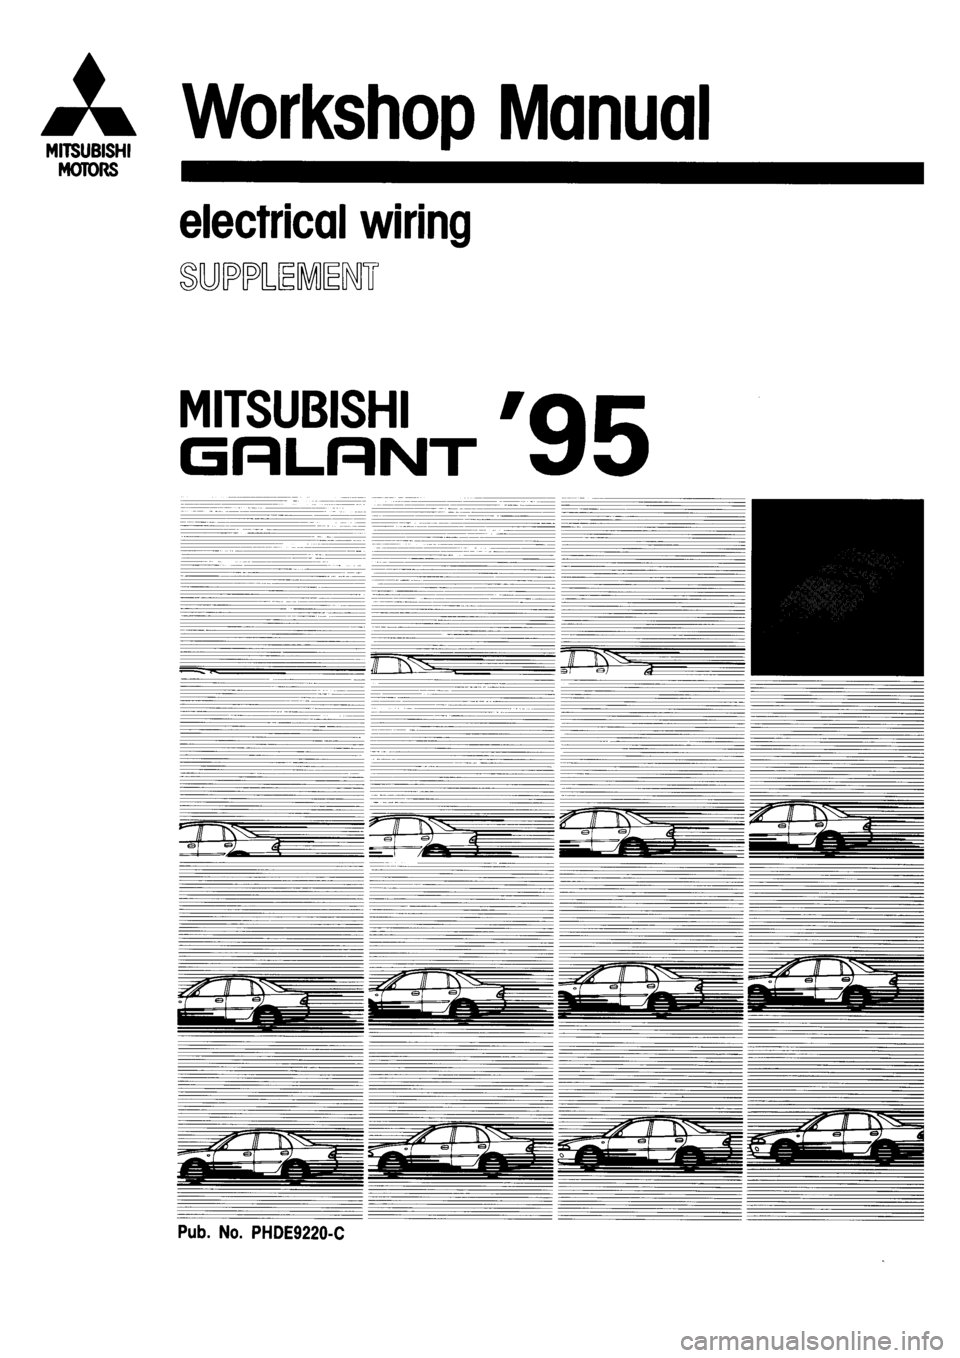 w960_7431 0 mitsubishi galant 1995 7 g electrical wiring diagram workshop manual mitsubishi galant wiring diagram at gsmportal.co